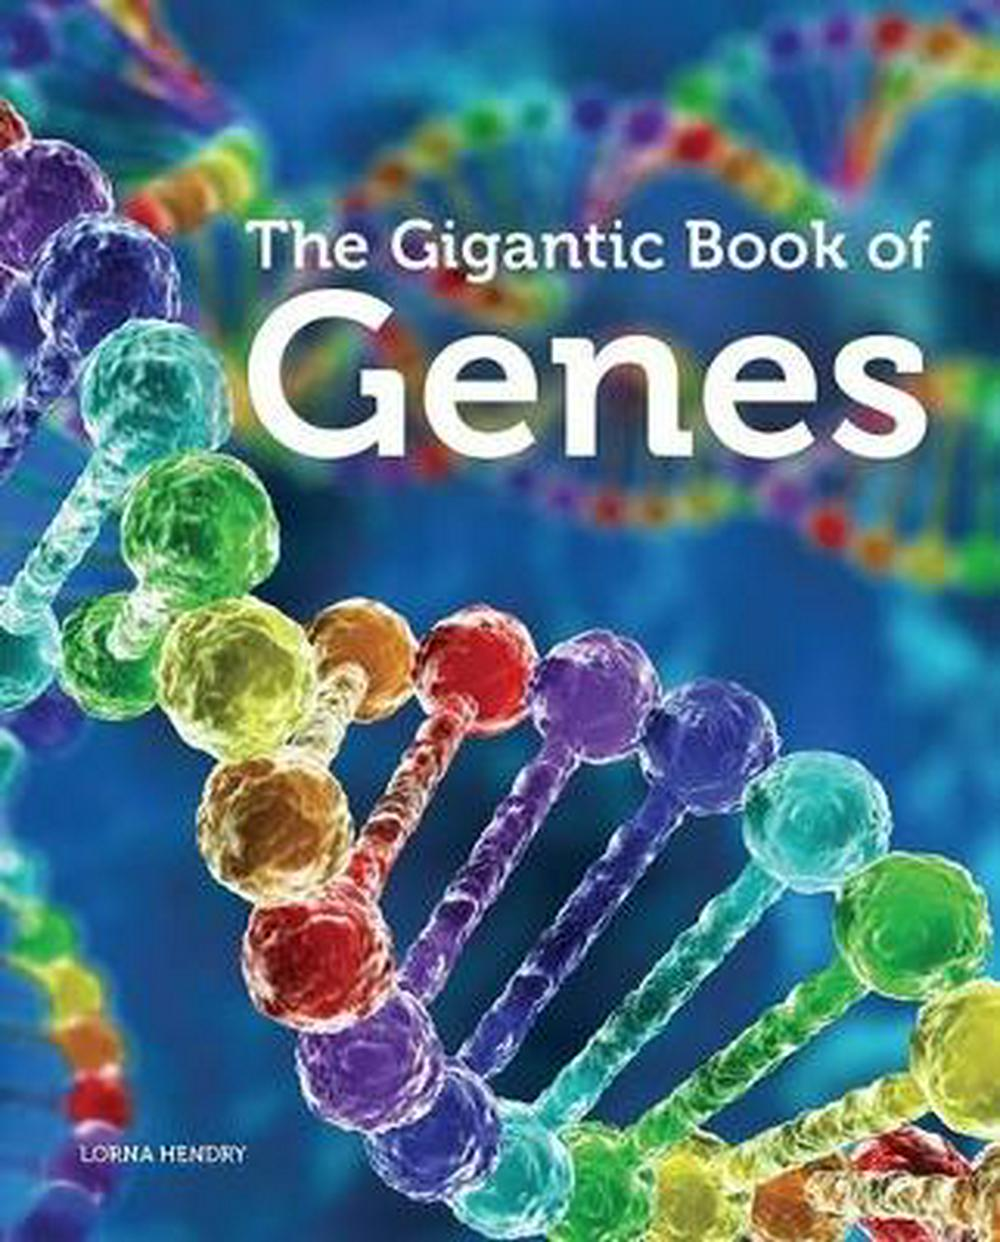 The Gigantic Book of Genes by Lorna Hendry, ISBN: 9781742034102